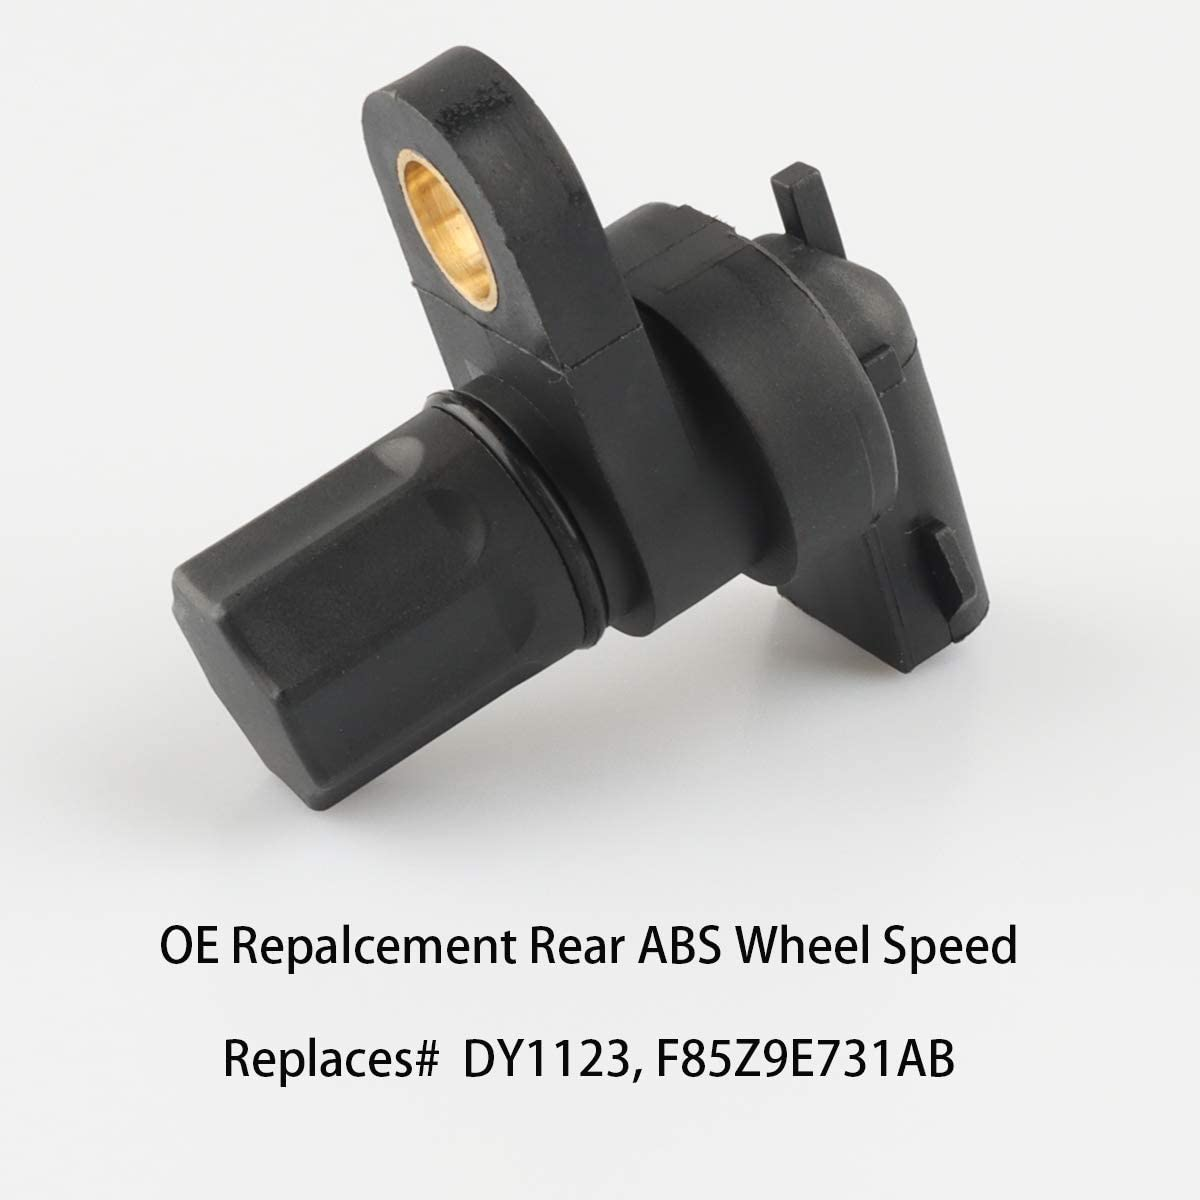 Mazda ABS Wheel Speed Sensor Rear DY1123 Compatible with 1990-2007 Ford E-150 250 350 F-150 250 350 450 550 Explorer Expedition 1994-1997 Dodge Ram 1500 Pickup F85Z9E731AB F85Z2L373AB